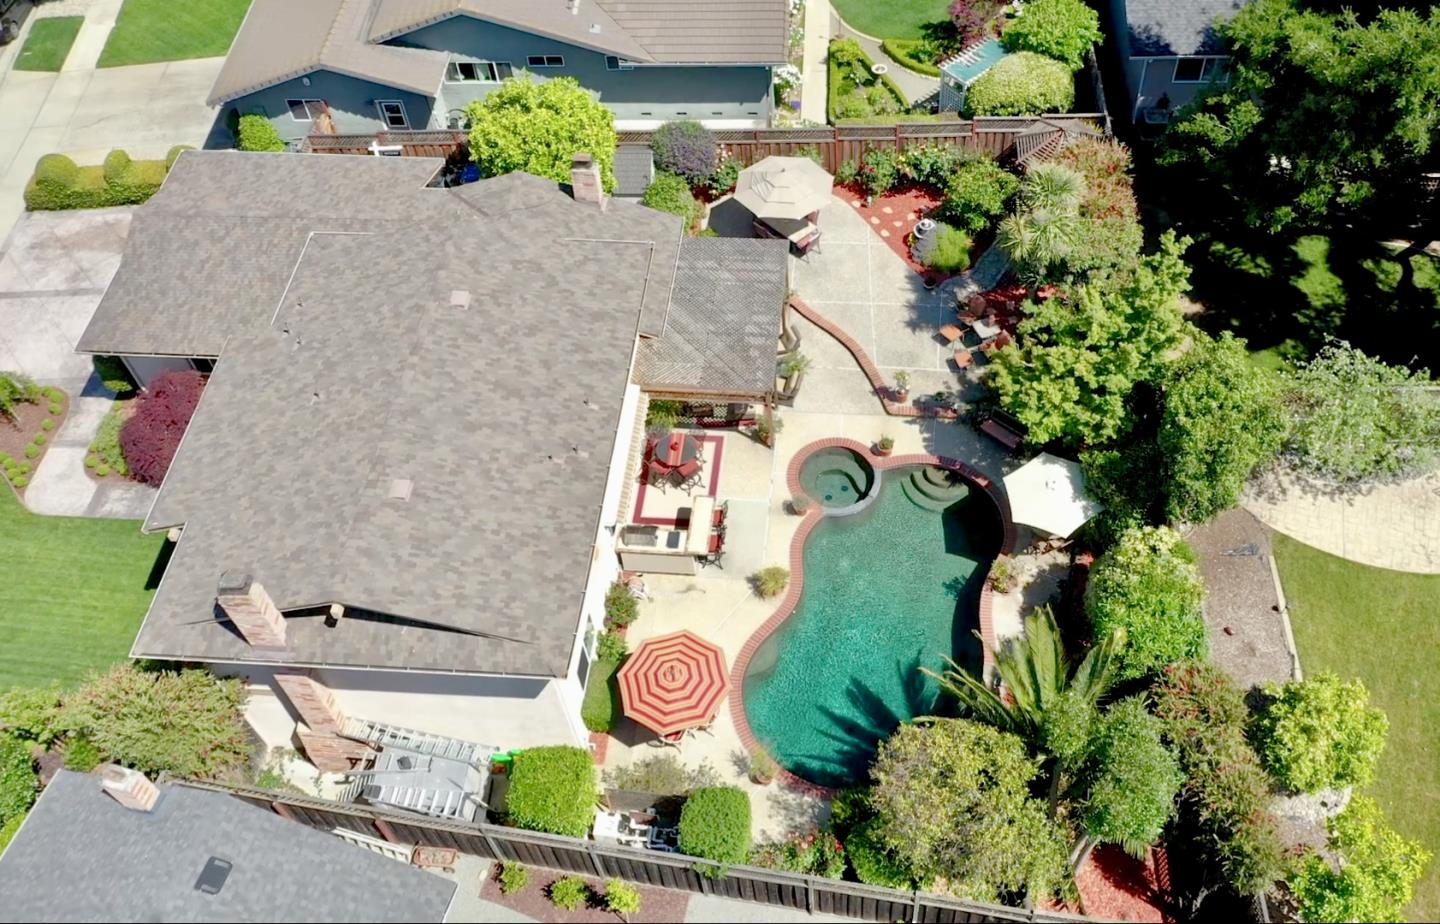 Detail Gallery Image 1 of 60 For 1486 Almaden Valley Dr, San Jose, CA, 95120 - 4 Beds | 2/1 Baths